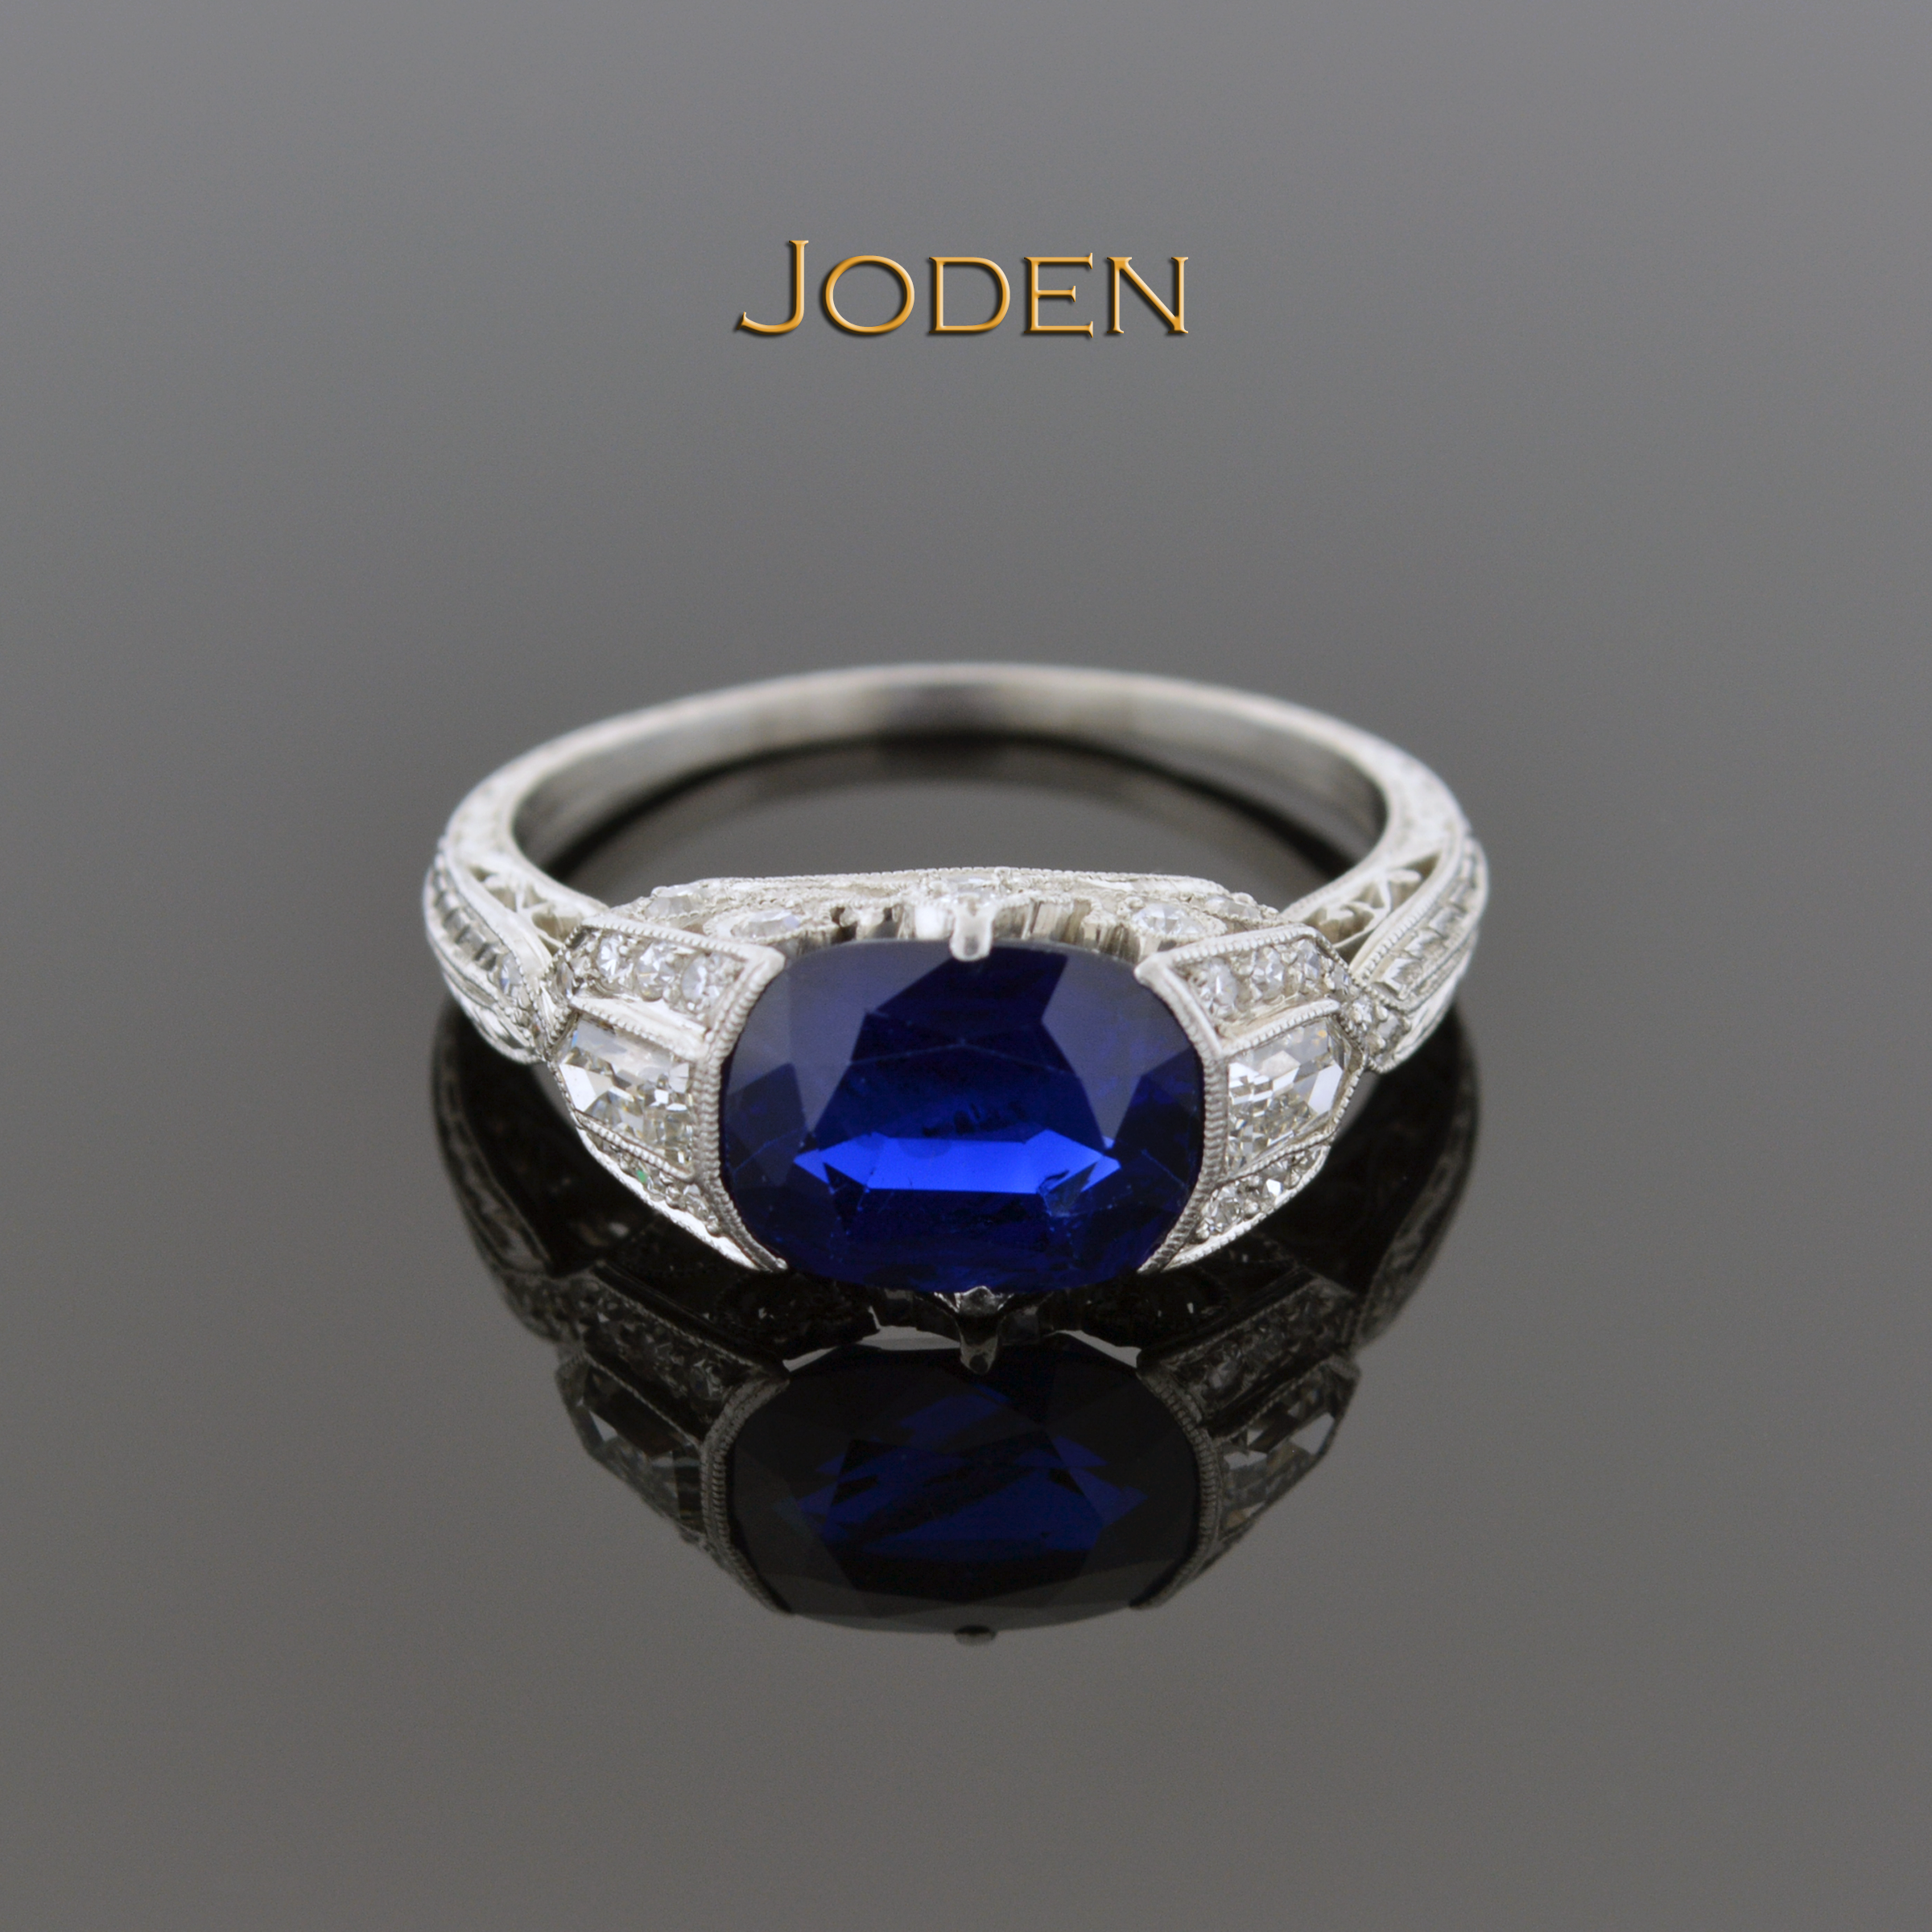 A beautifully cut oval sapphire sits east-west in this gorgeous Art Deco diamond…